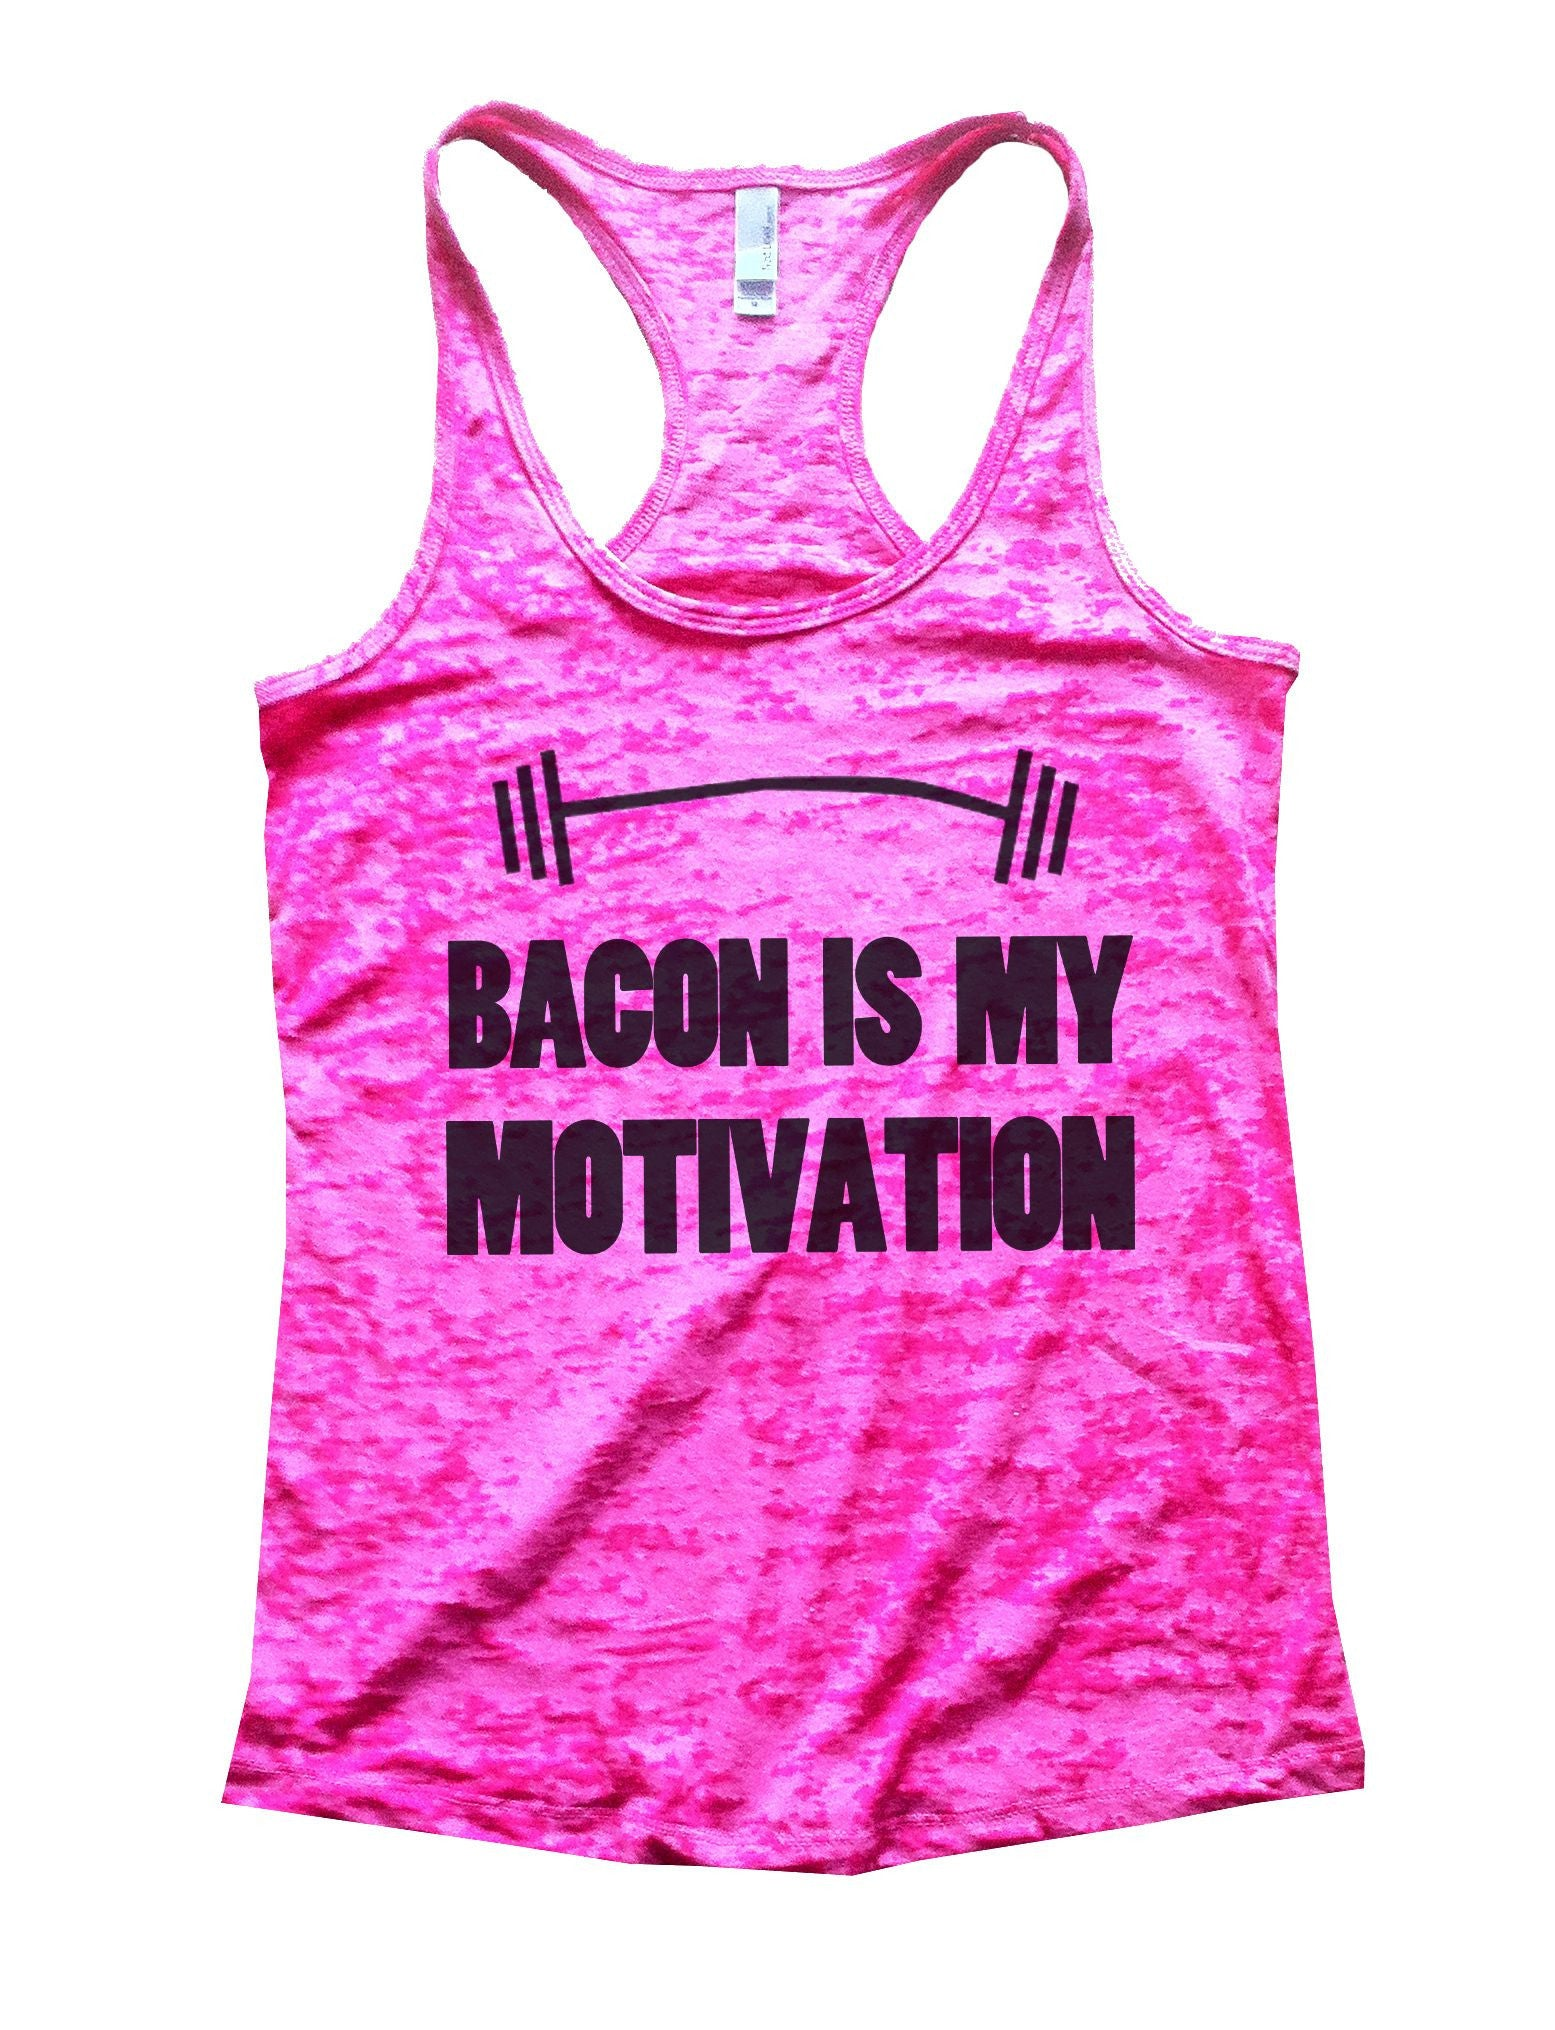 Bacon Is My Motivation Burnout Tank Top By BurnoutTankTops.com - 740 - Funny Shirts Tank Tops Burnouts and Triblends  - 3